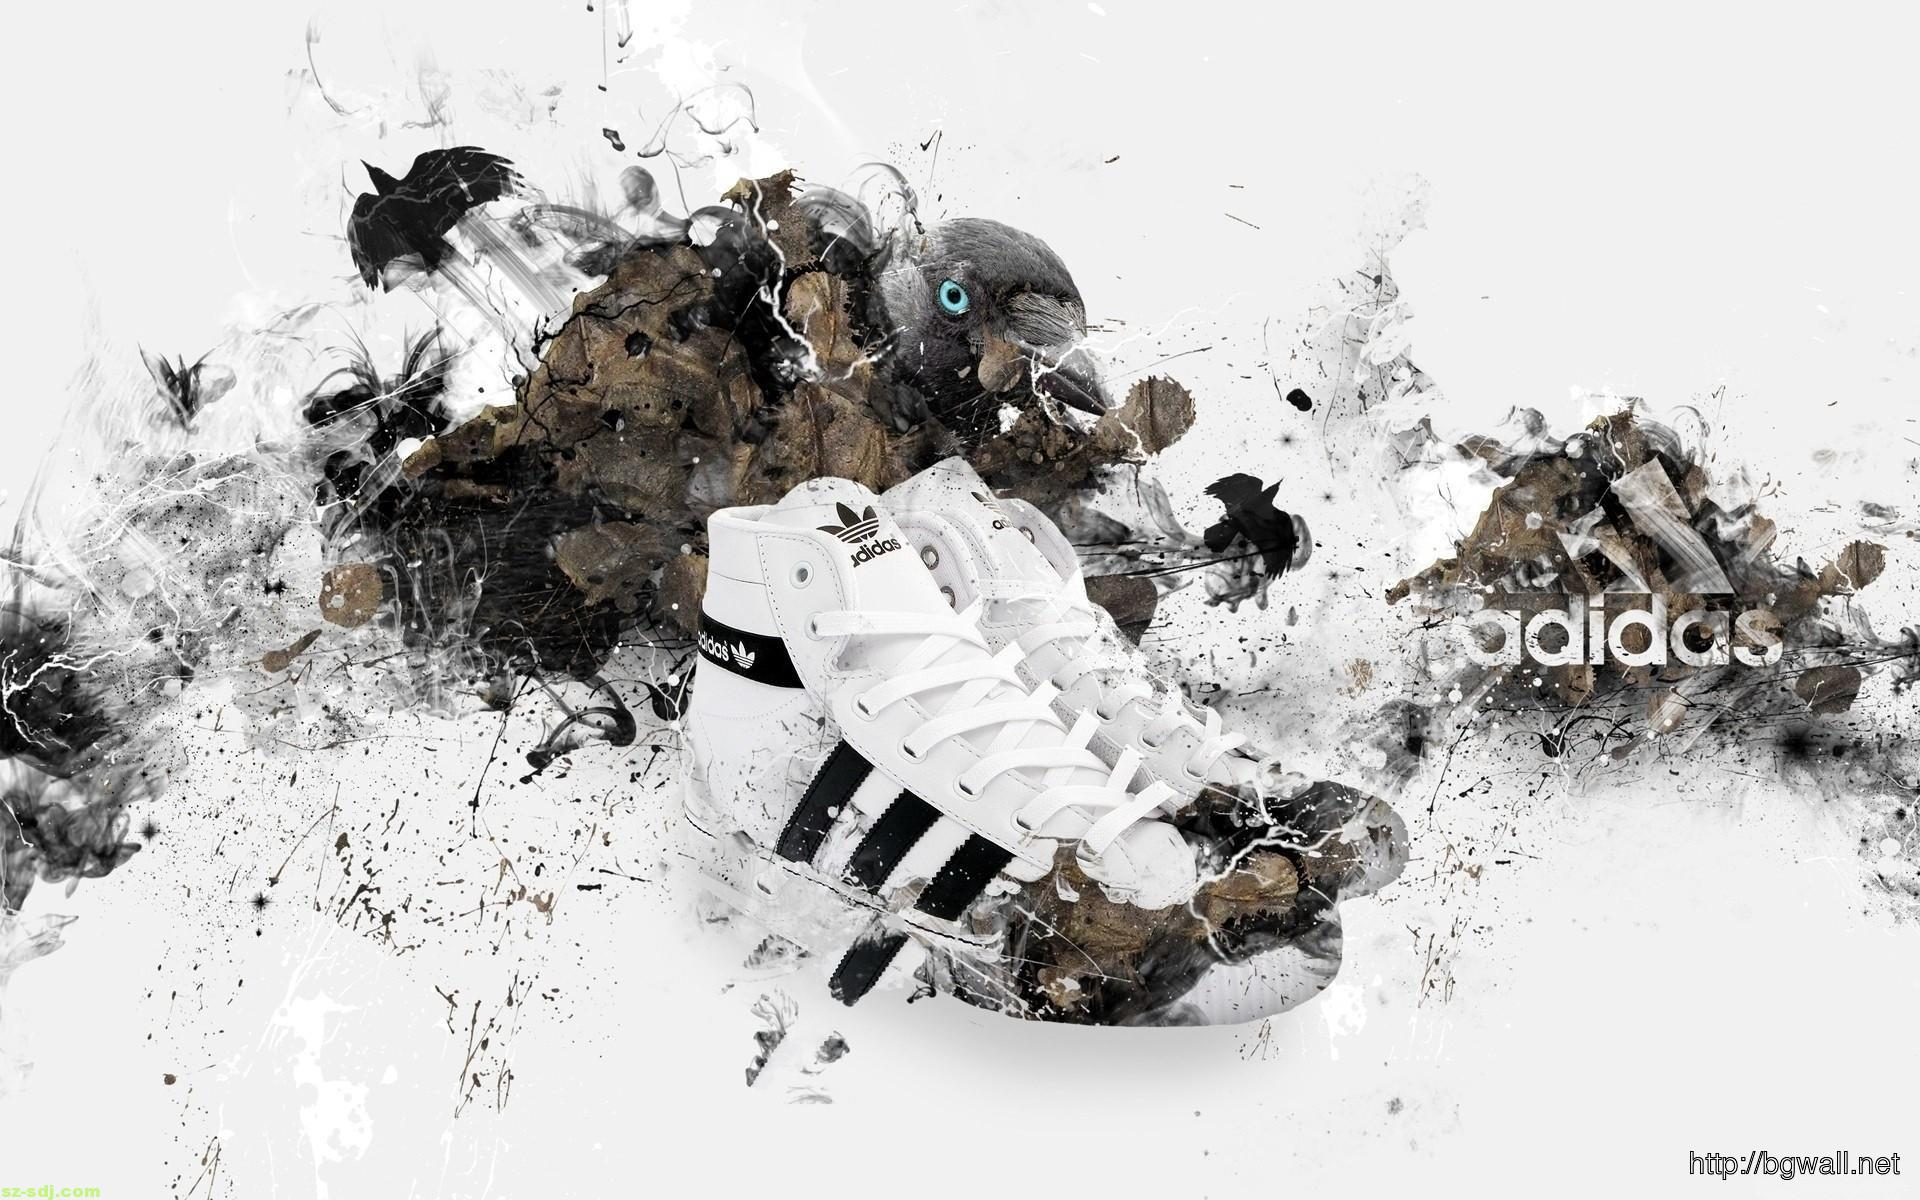 adidas-logo-shoes-sports-wallpaper